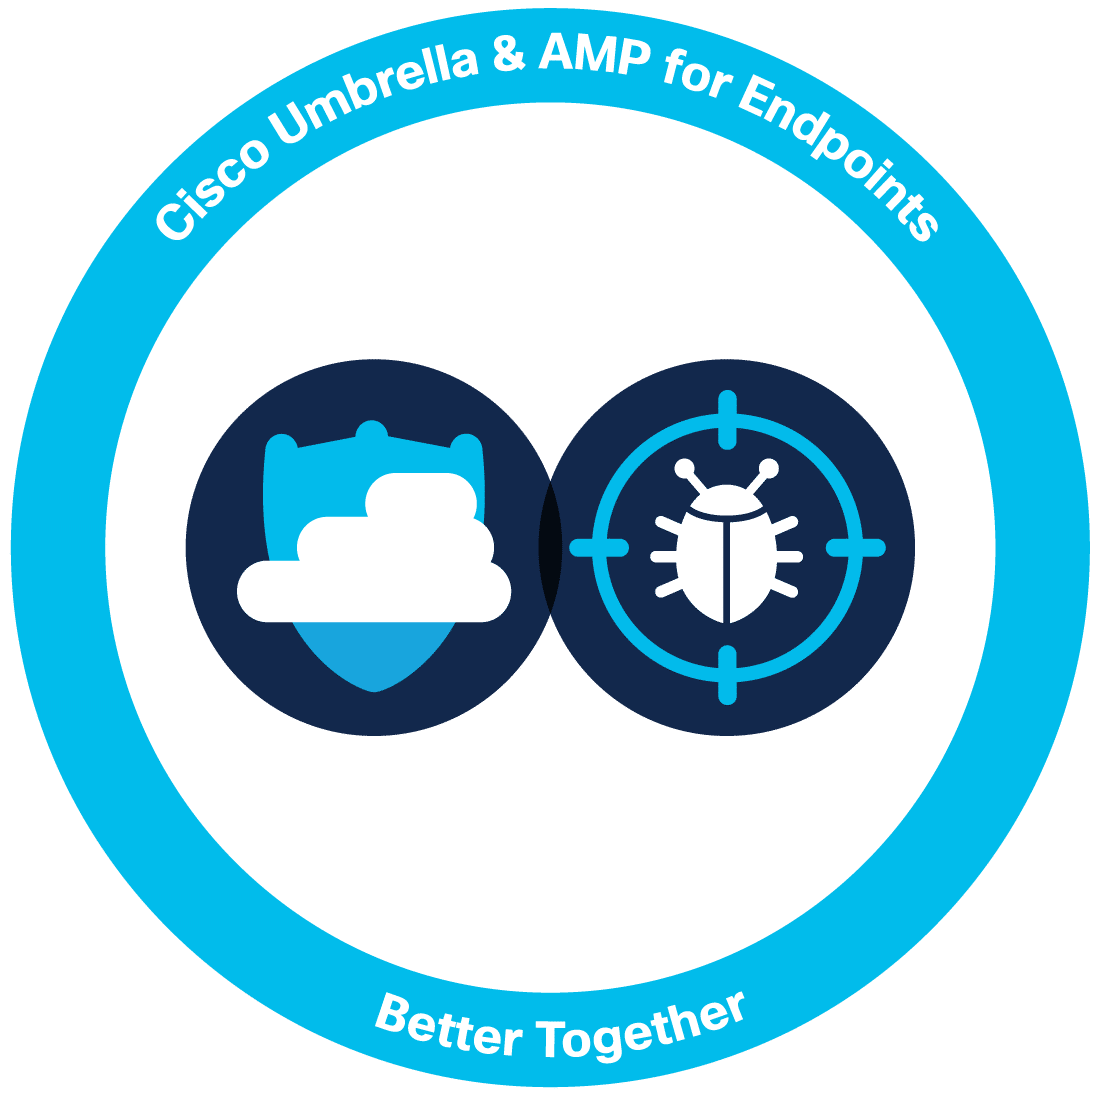 Umbrell and Amp - Better together illustration